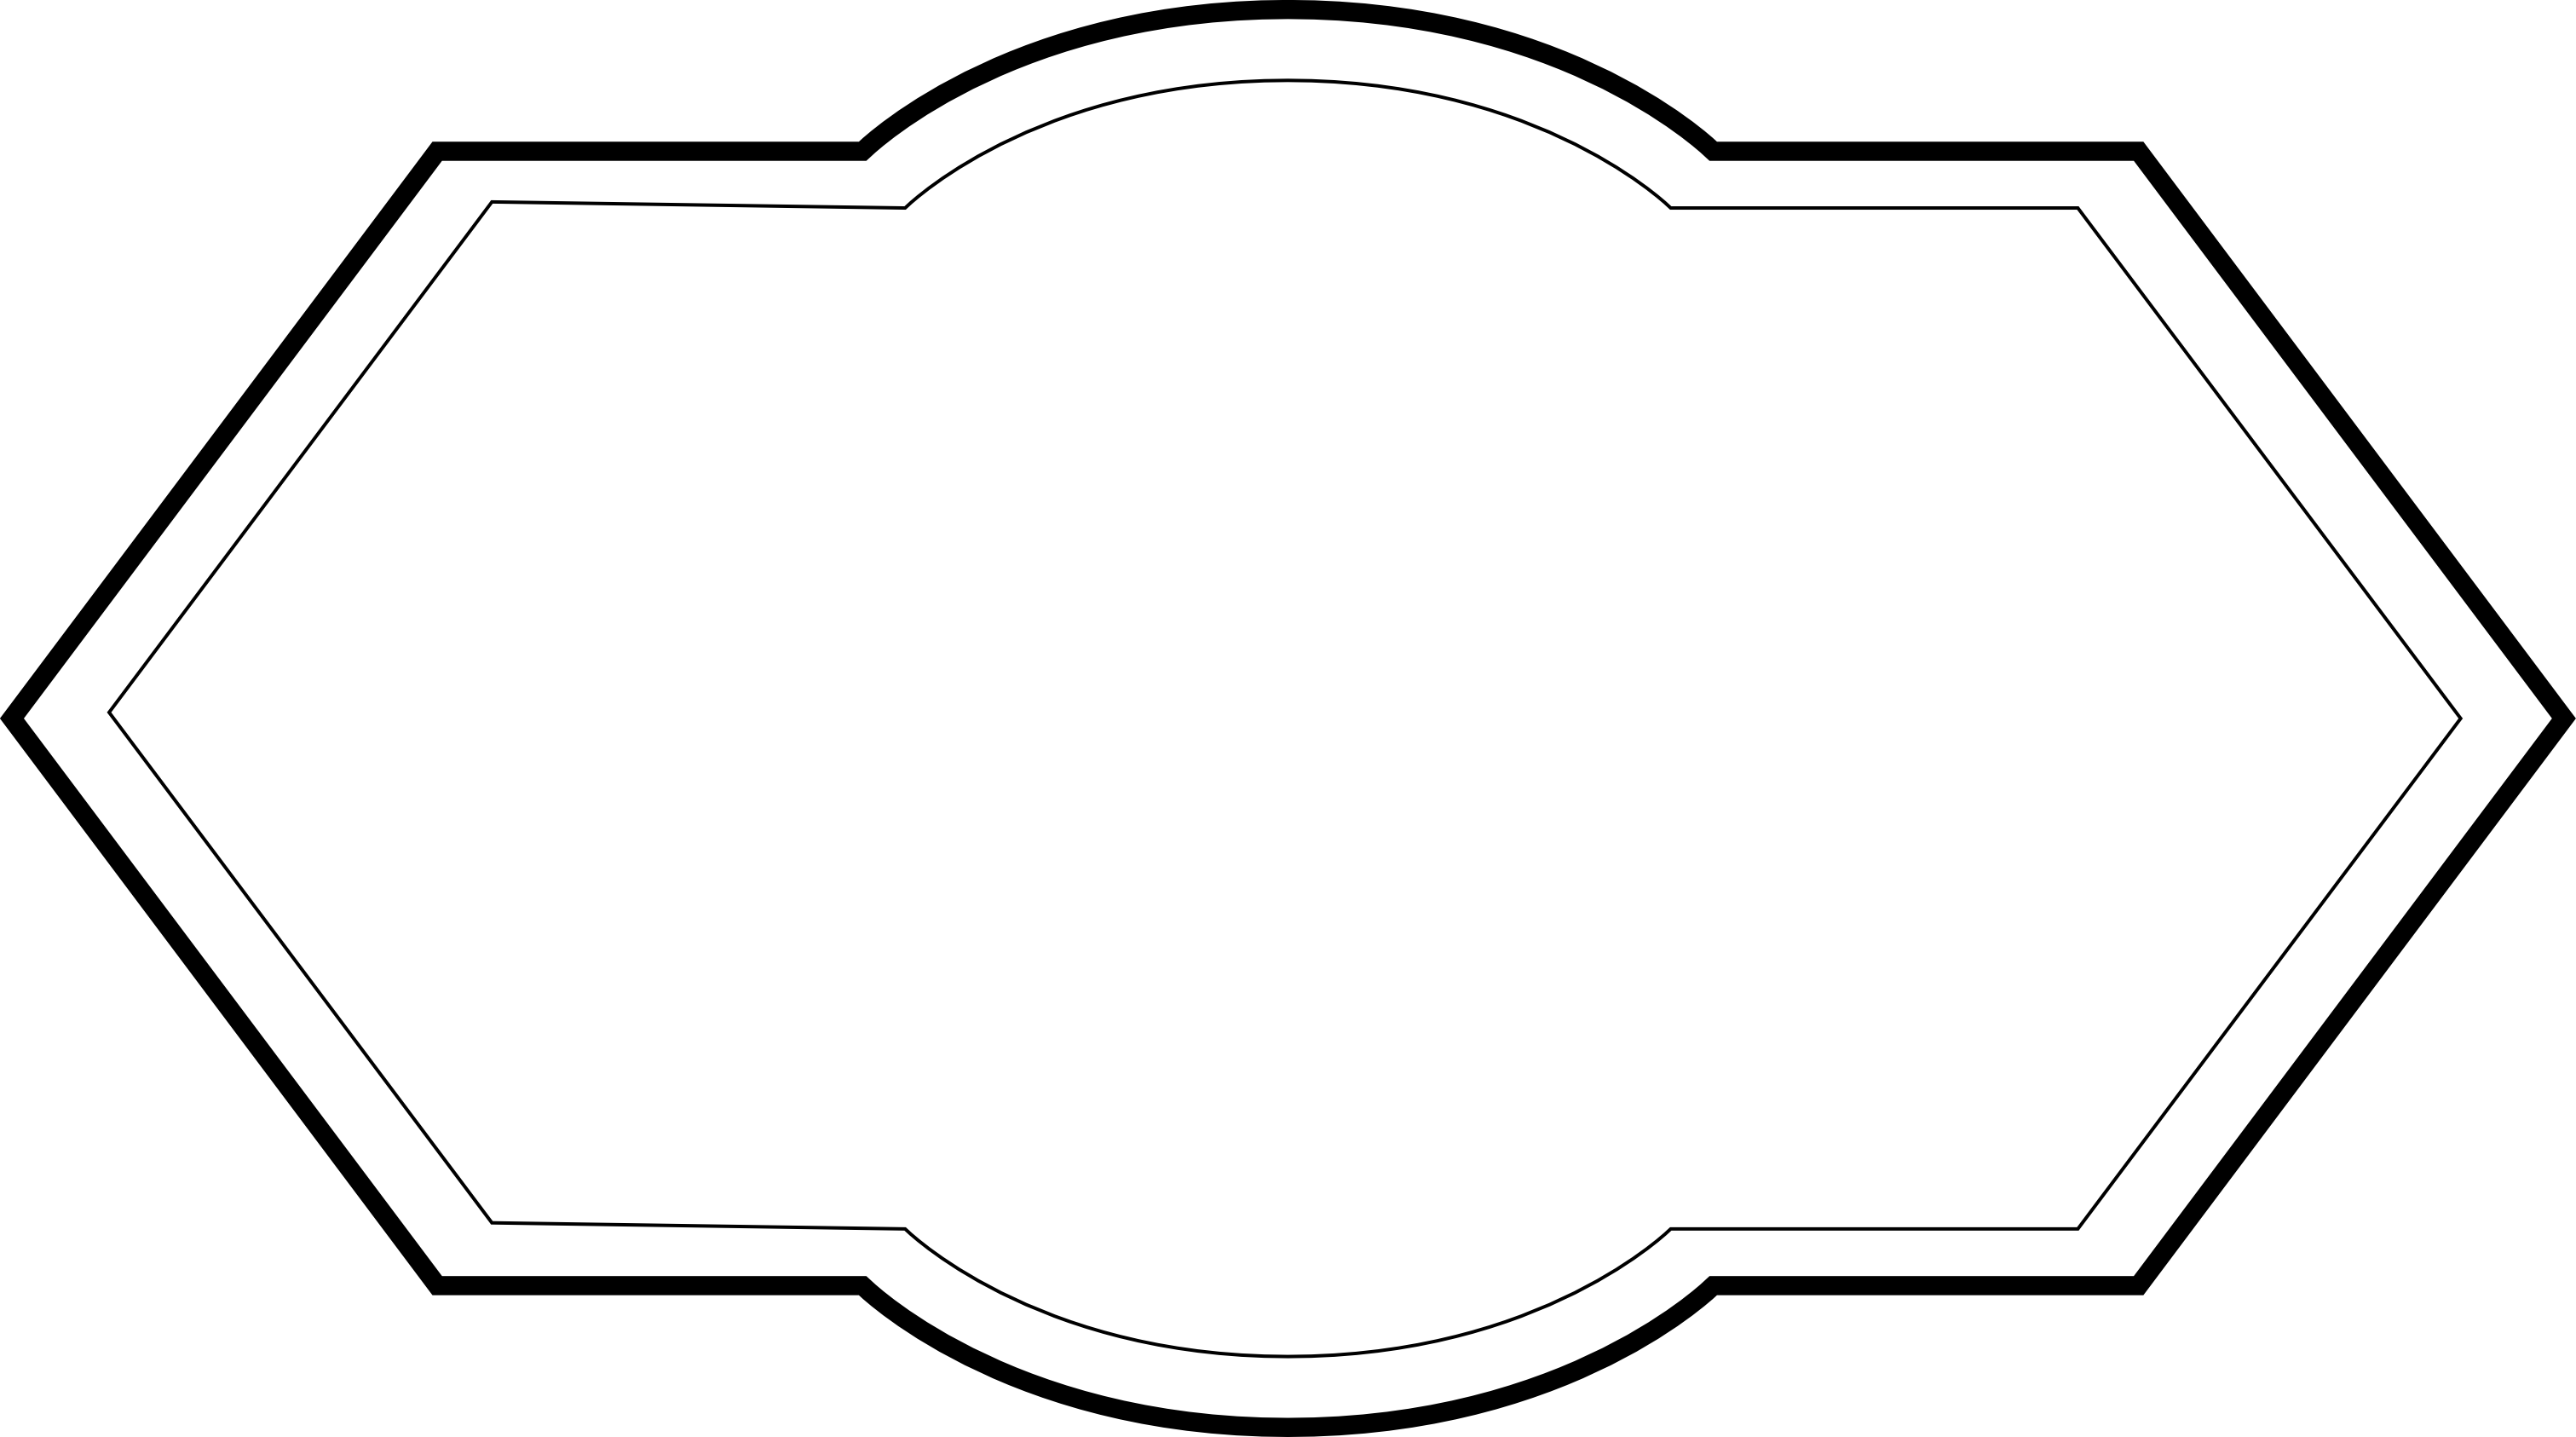 label frames png - photo #24